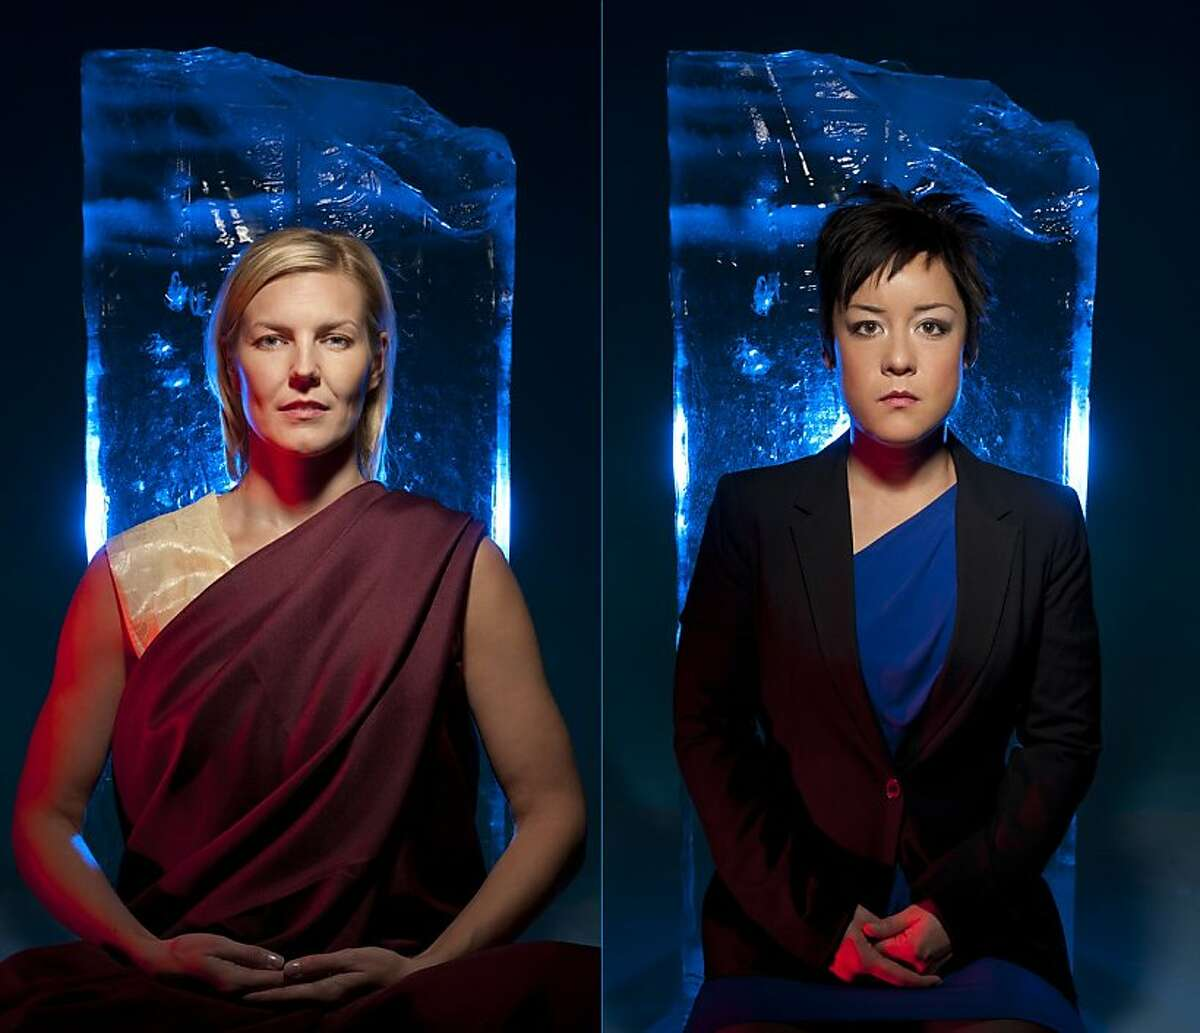 """World-renowned spiritual teacher Mama Sid (Annemaria Rajala, left) and young journalist Raina (Anna Ishida) take a modern slant on the life of the Buddha in the world-premiere musical """"The Fourth Messenger"""" running March 10 at the Ashby Stage in Berkeley."""